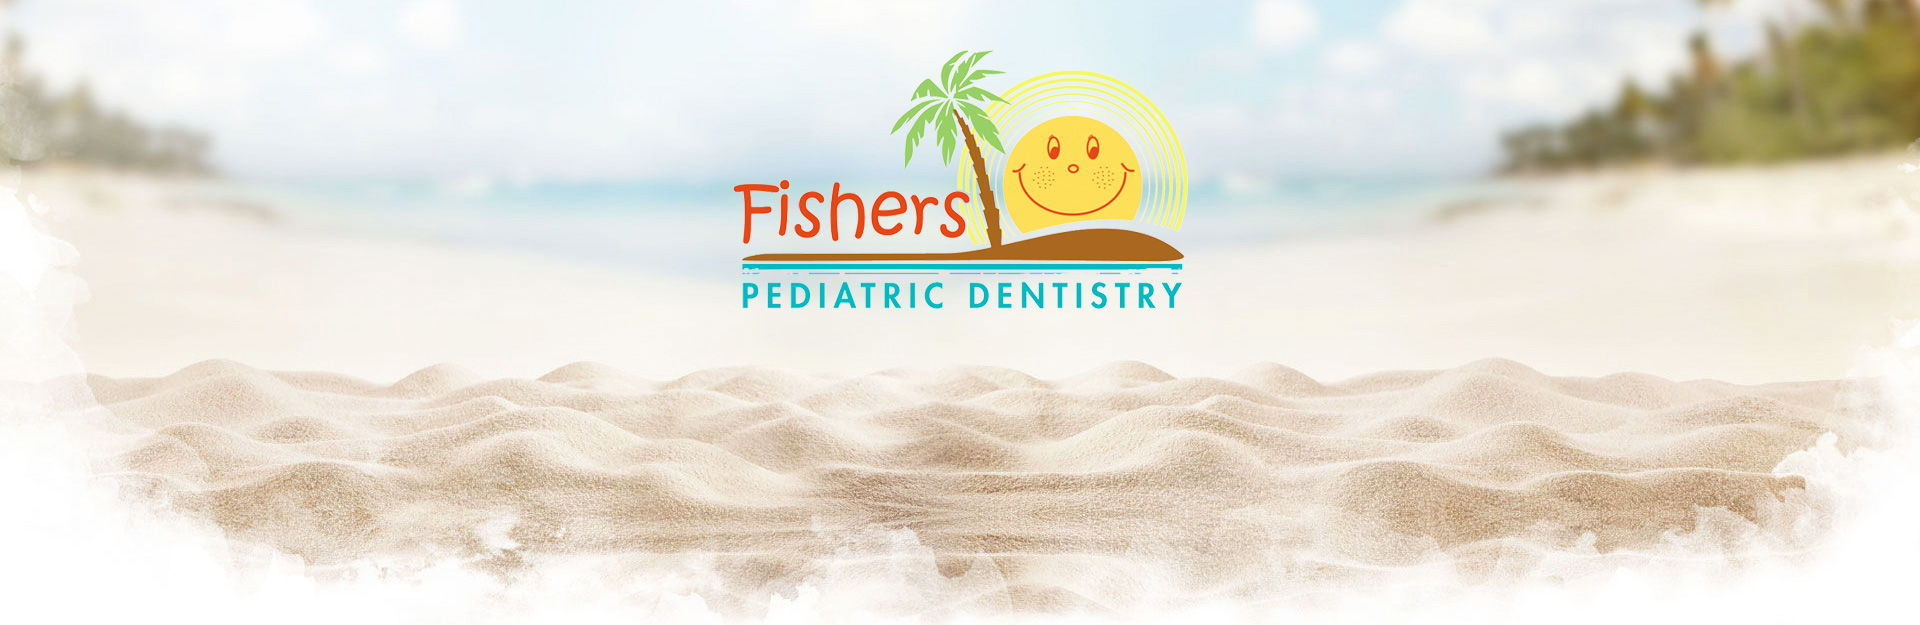 Fisher Pediatrics Dentistry